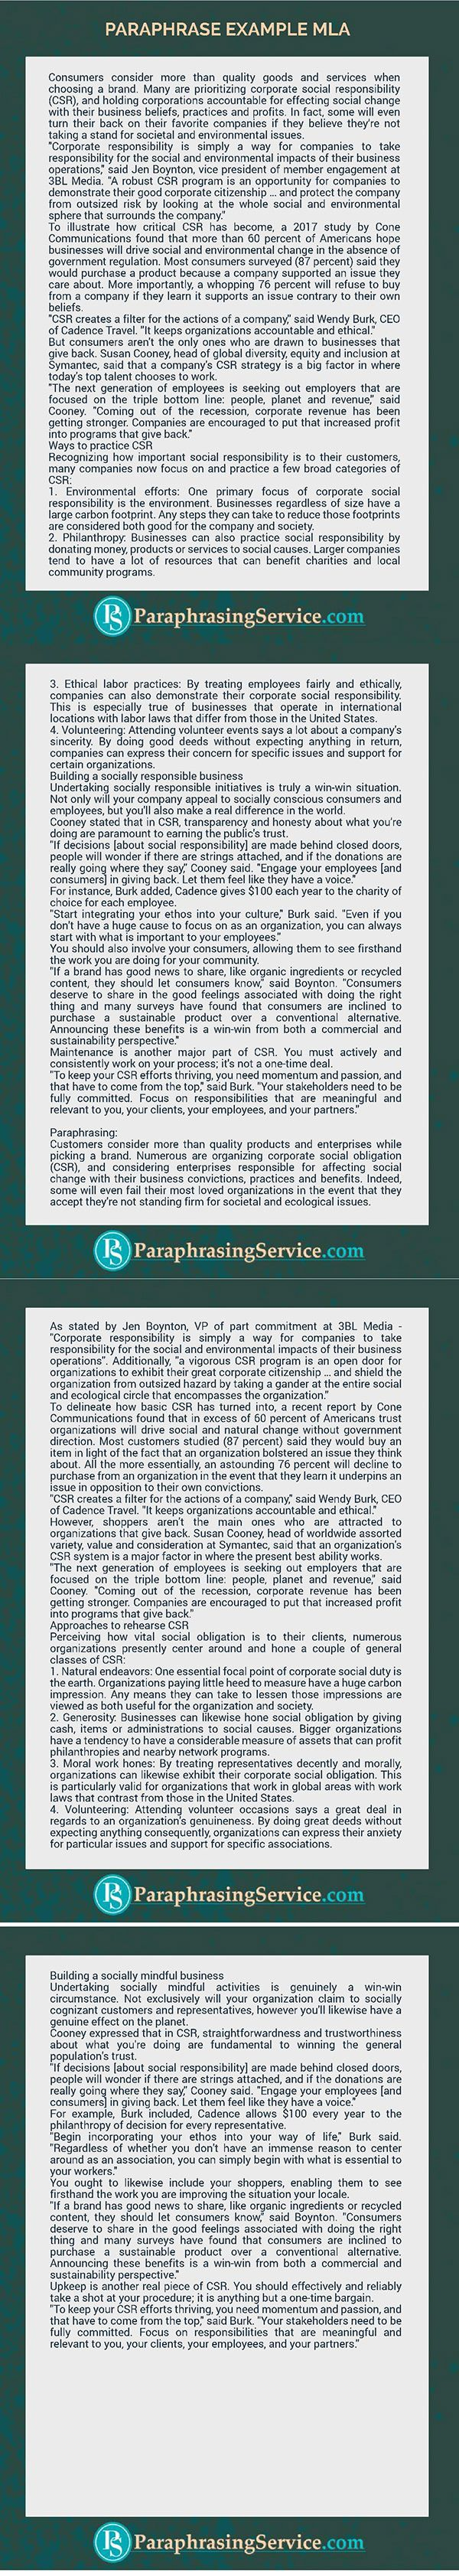 Paraphrase Example Mla That Will Show You What To Do Make Your Parparhaseing Perfect Get More Sample On Thi Site Now Http Quality Quote How Paraphrased